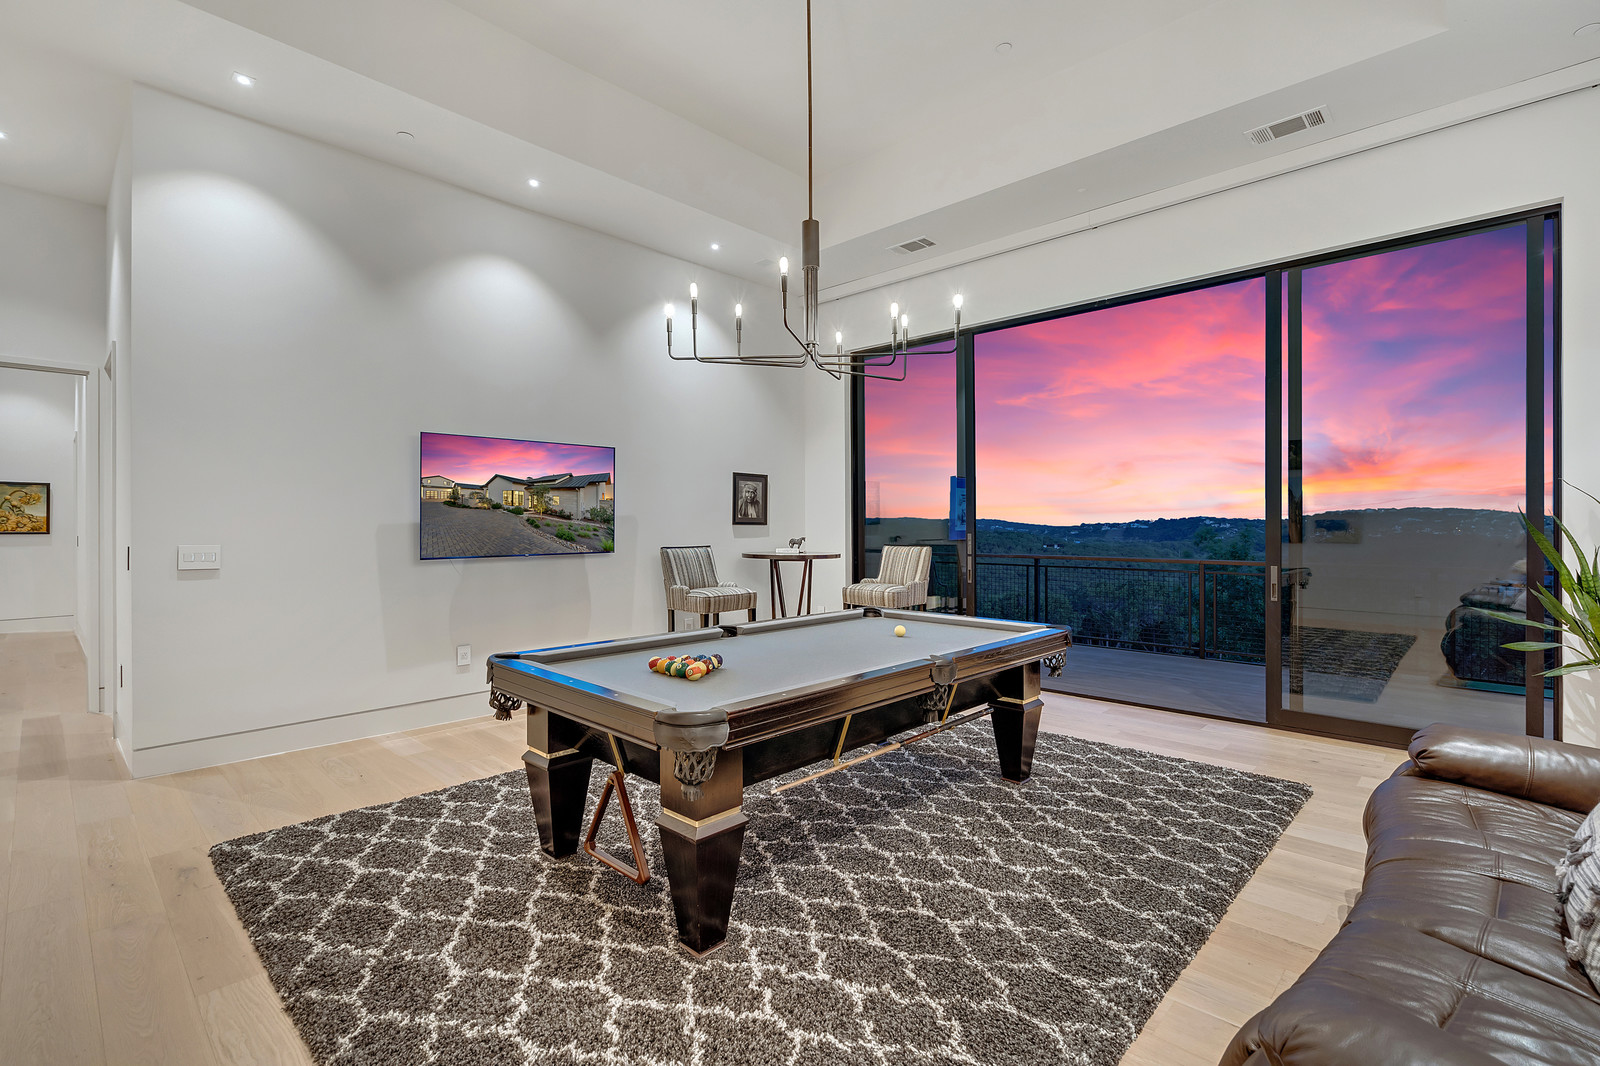 2nd family room makes a great game room or kids' space